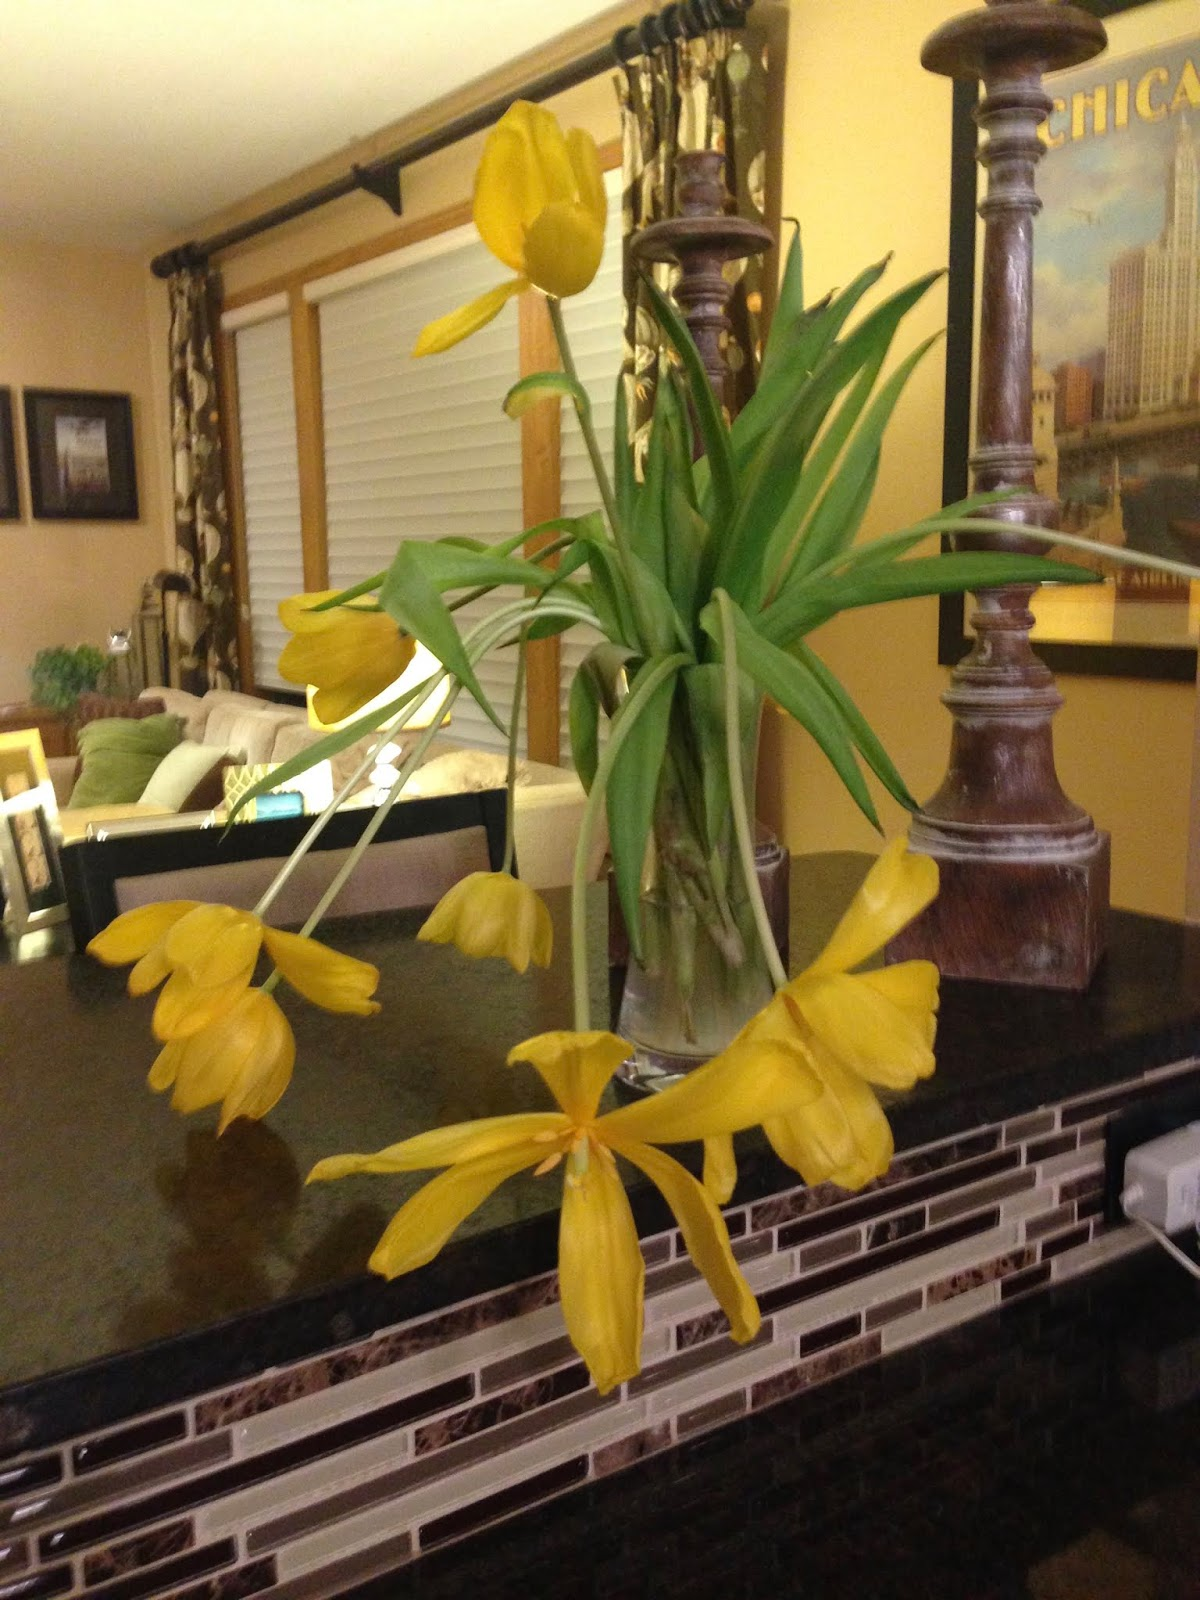 Become a Smarter Gardener in 2019: Why do bulb cut flowers ... on flower wallpaper, flower fences, flower arrangements, backyard designs, kitchen designs, flower background, flower arch, landscape designs, flower coloring pages, flower gardens for small yards, flower gardening, flower gardens with fountains, vintage wallpaper designs, flower gardens for florida, flower display, flower beds, swimming pool designs, patio designs, yard designs, flower desktop,